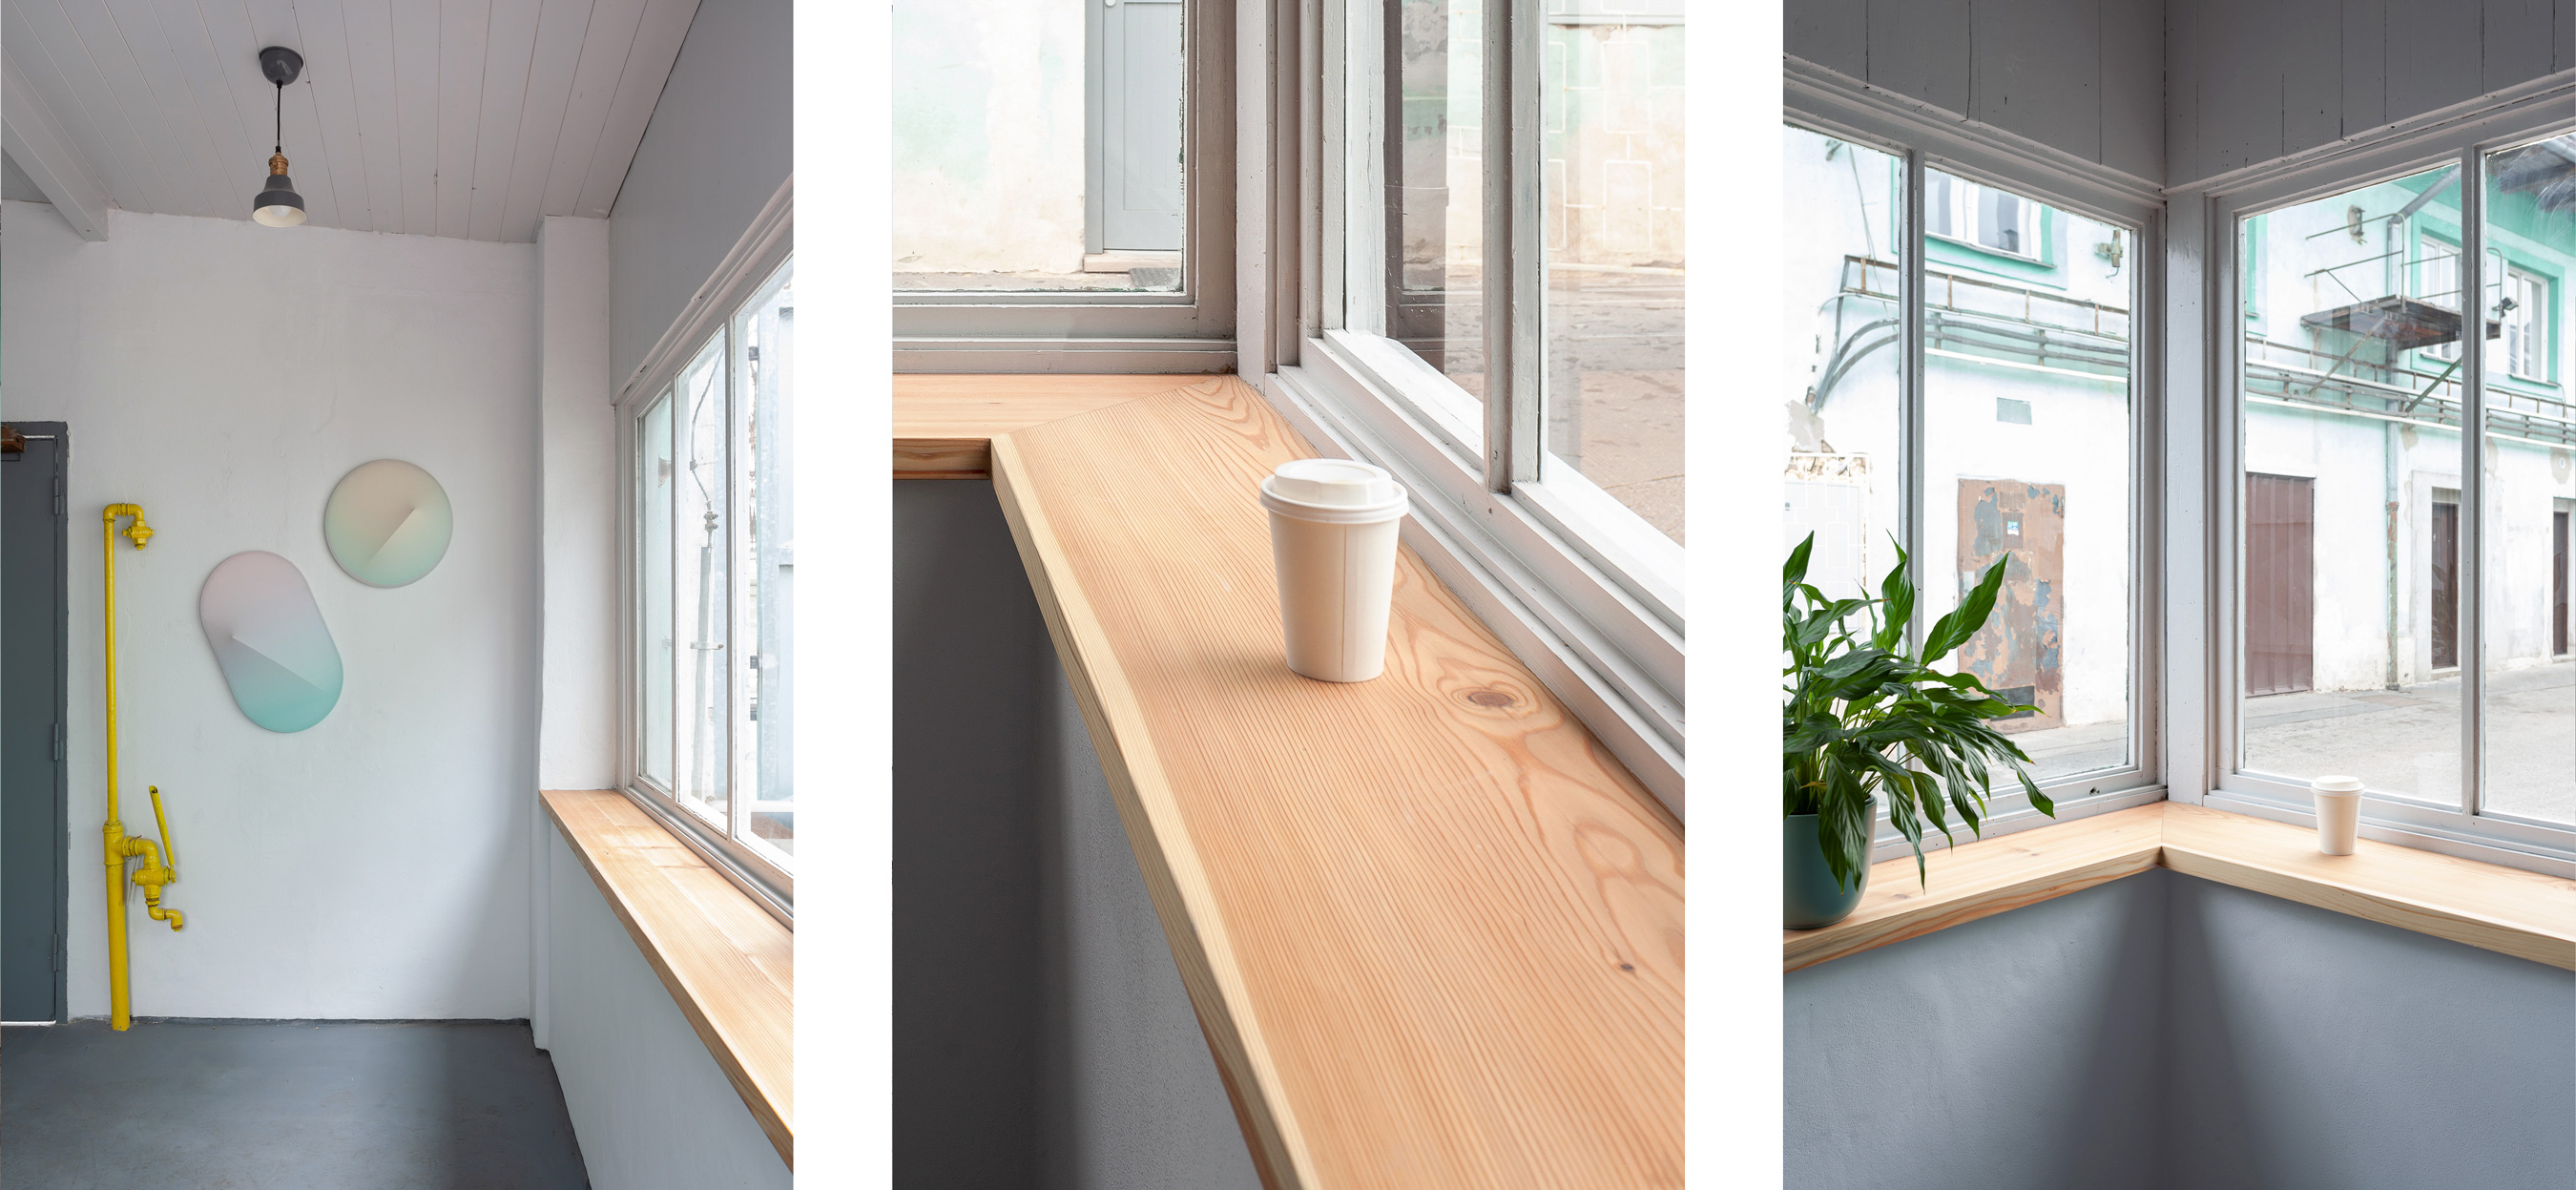 Interior Views; Three Photos by Alex Timpau